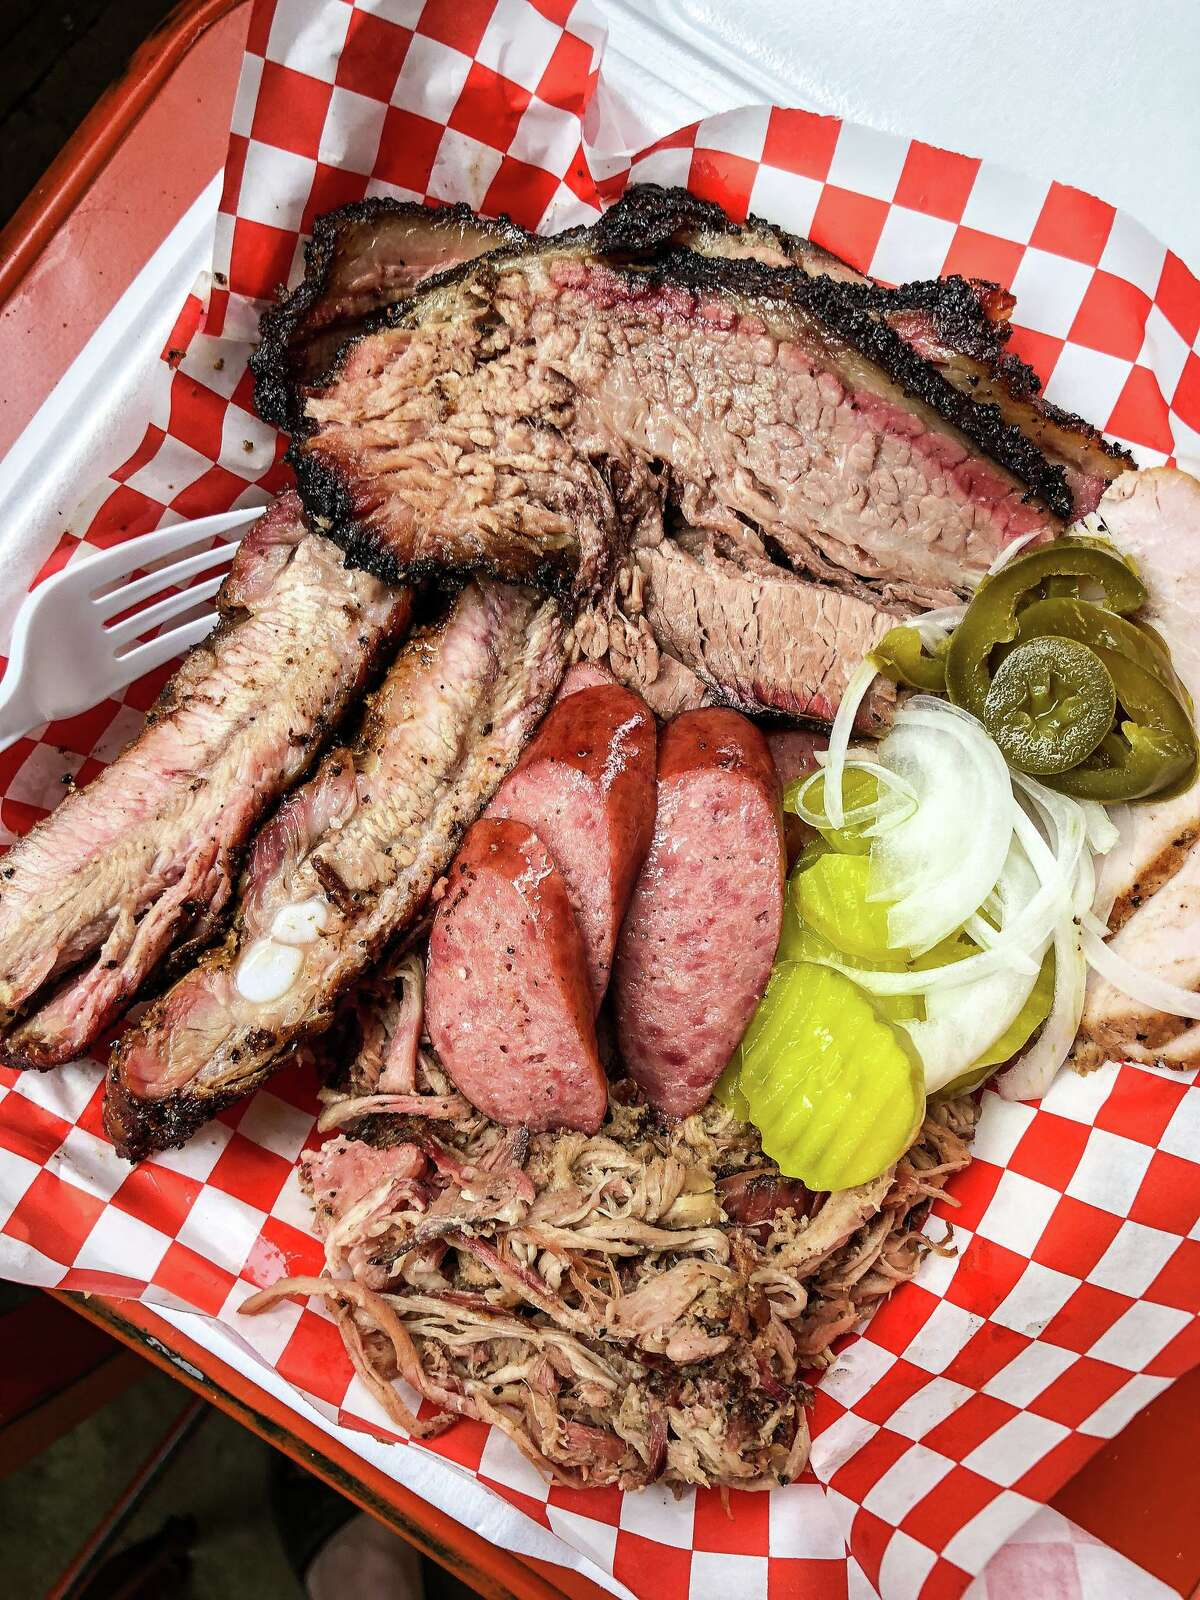 Eaker Barbecue's first service was on Super Bowl Sunday this past February. Since then, they have attracted a following by posting their opening times and locations every Monday on their Facebook page.